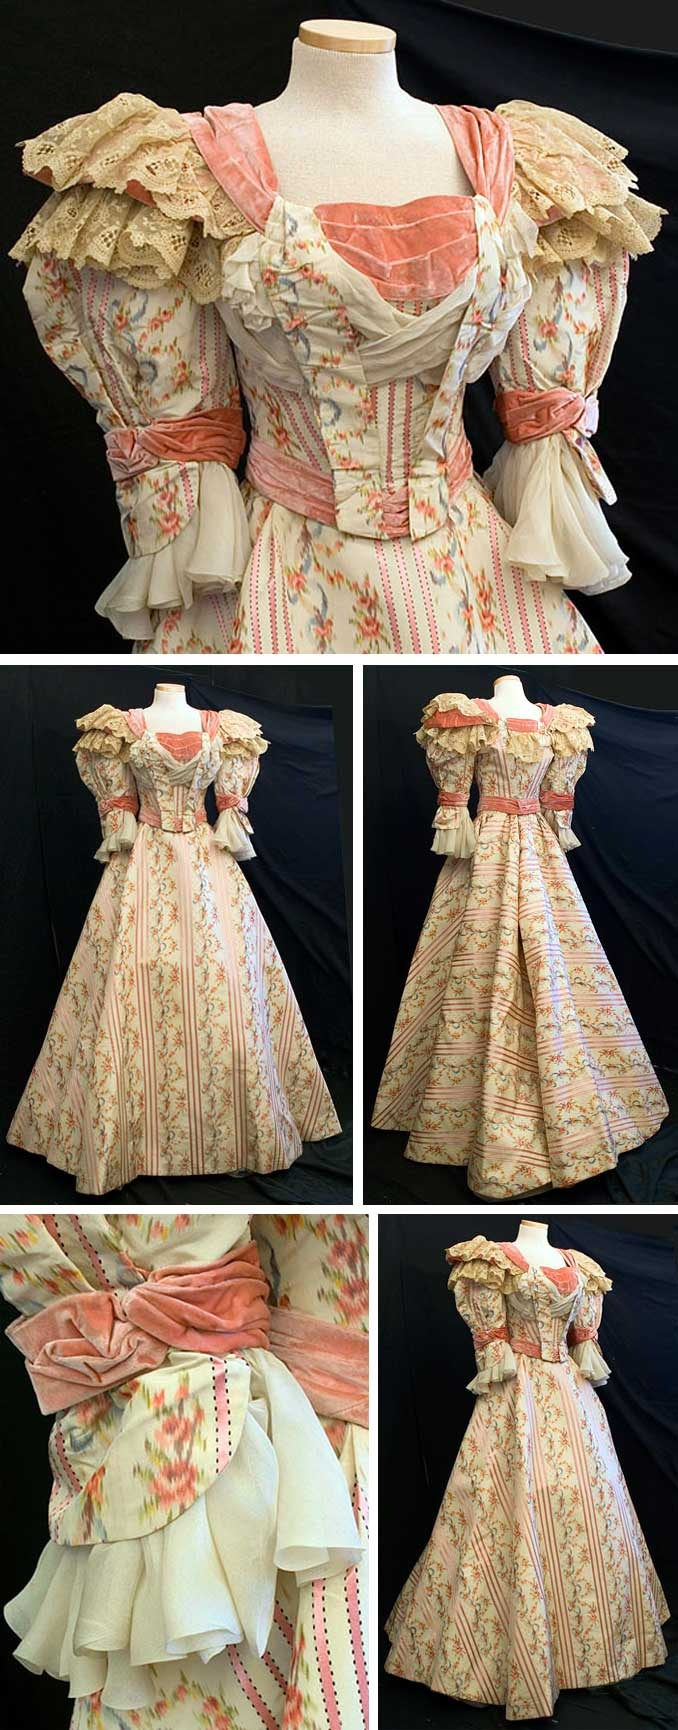 Gown, Fox Sisters, New York, ca. 1895. Silk faille combines ribbon-weave satin stripes with watered silk flowers. Fabric embellished with pink velvet trim and flounces of beige lace and ivory silk chiffon. Both pieces lined with ivory taffeta. Boned bodice closes in front with hooks and has little sachet packets inside front. Skirt hem stiffened to hold shape, closes in back with hooks and hooks to bodice. The Fox sisters made dresses for the cream of society.Vintage Textile via…